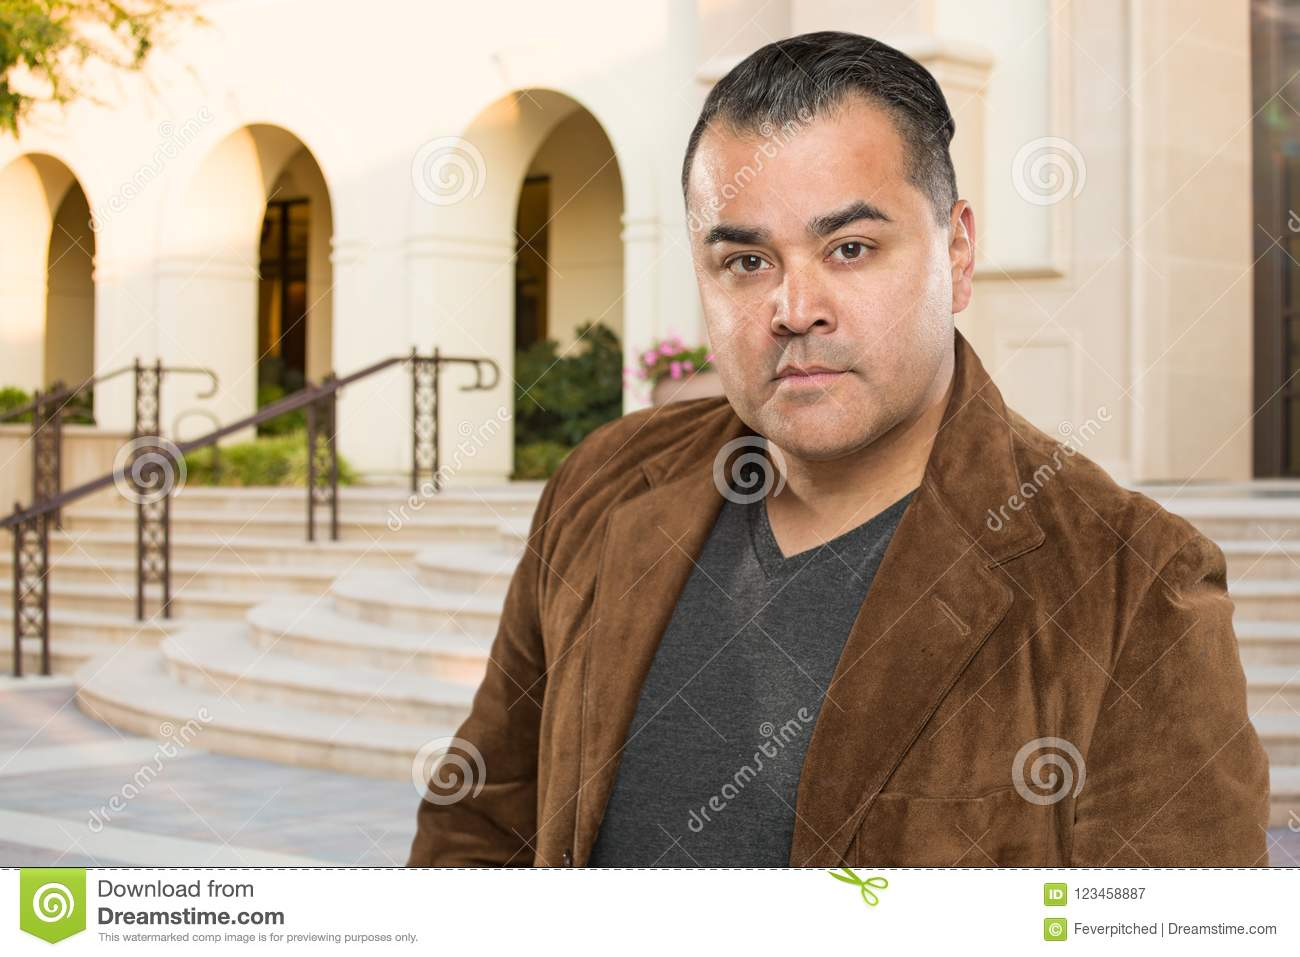 Handsome Young Hispanic Adult Outside of Building